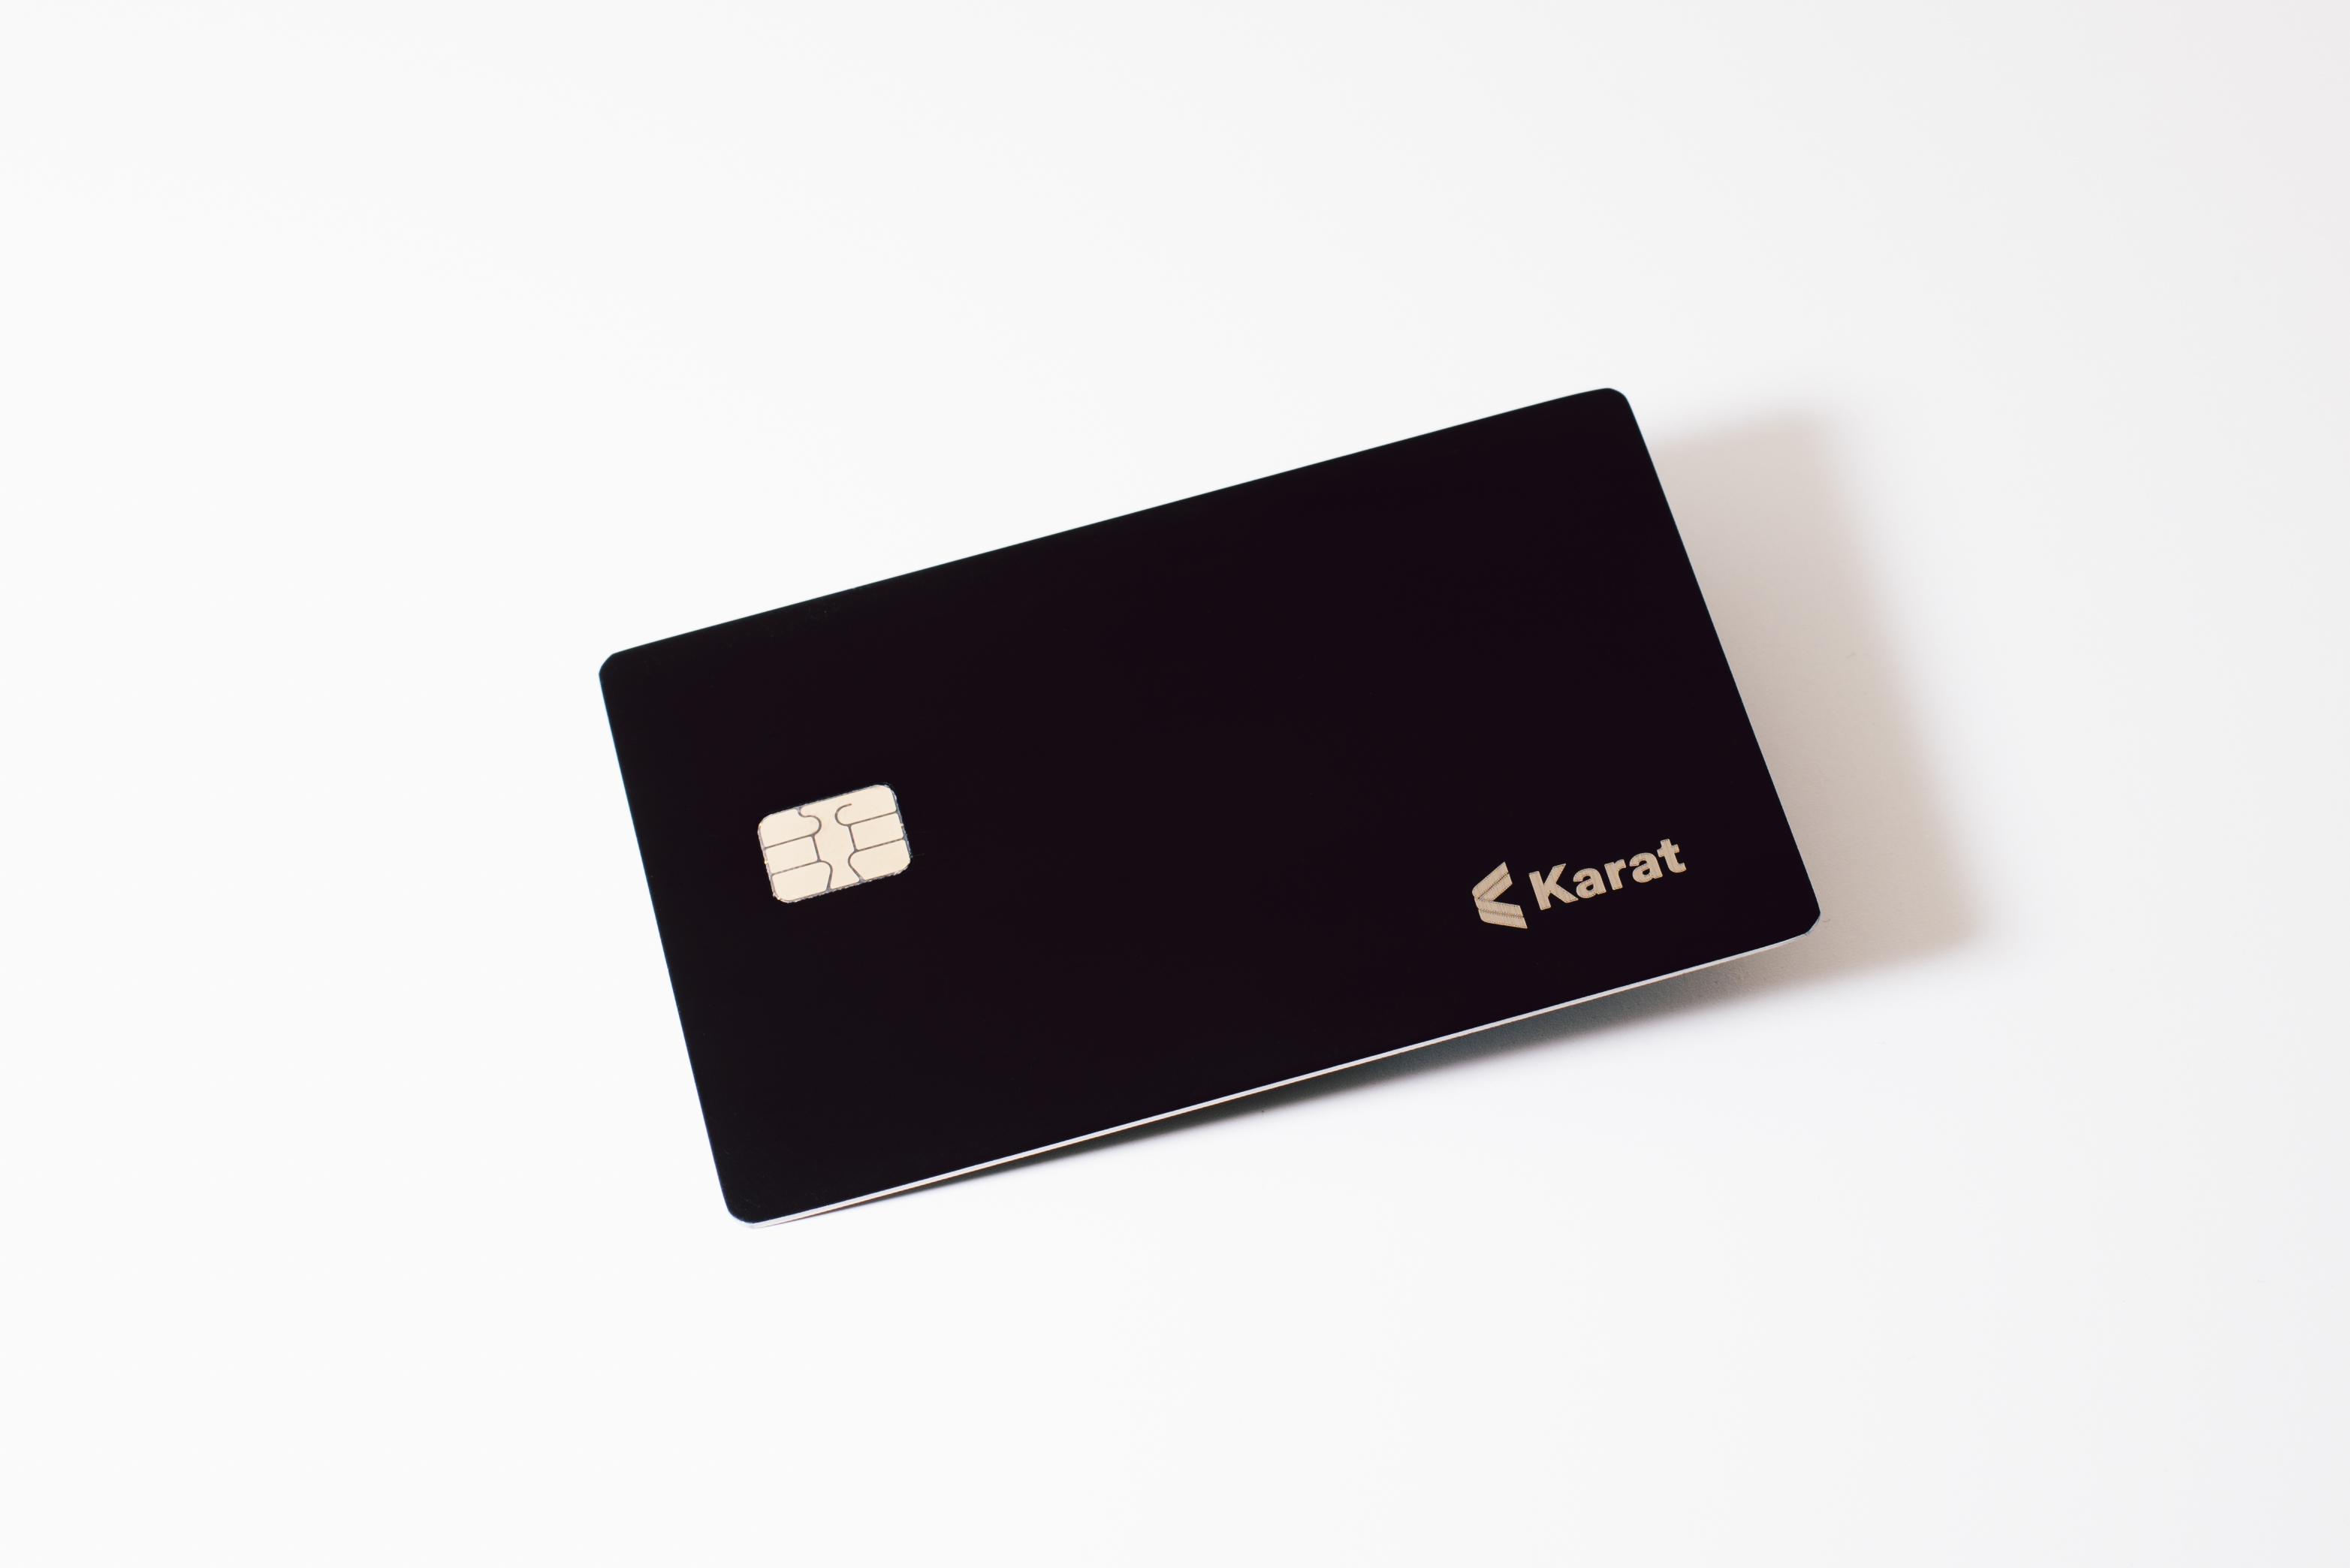 https://techcrunch.com/wp-content/uploads/2020/06/Karat-Black-Card_8.jpg